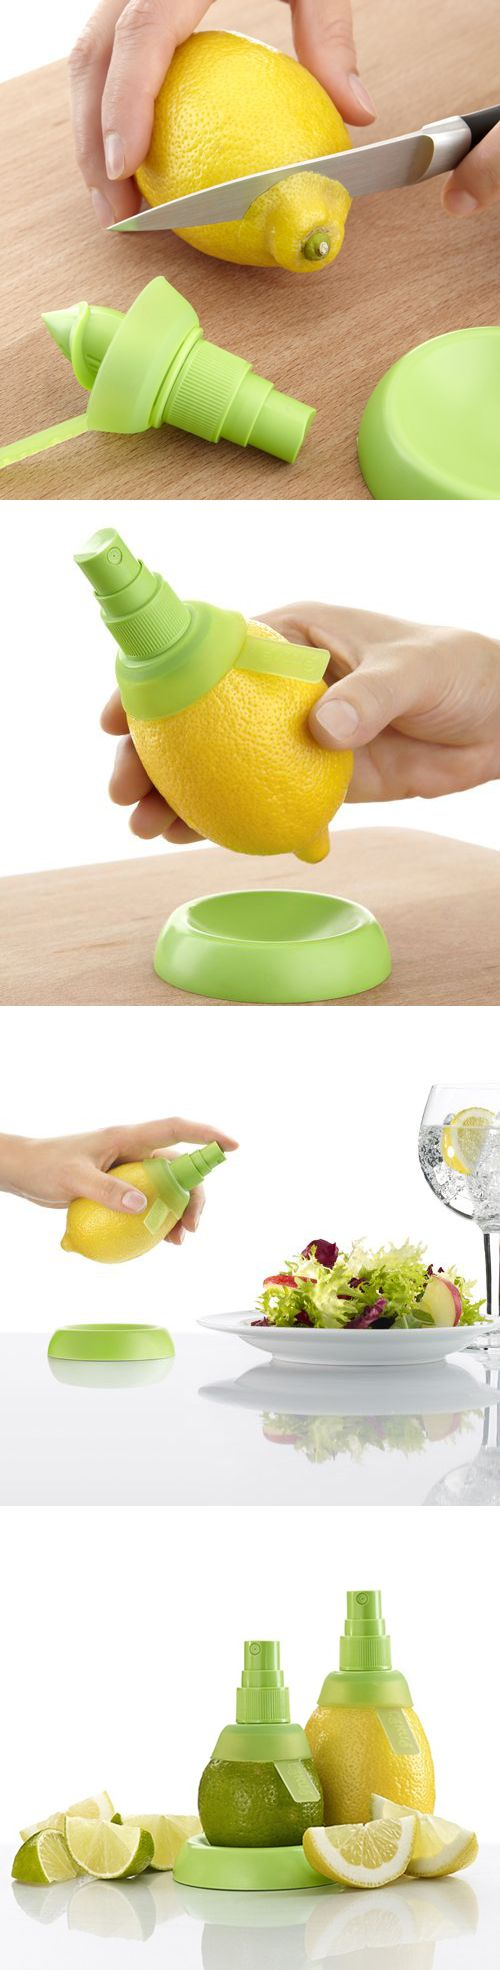 Lekue Citrus Spray - great invention!